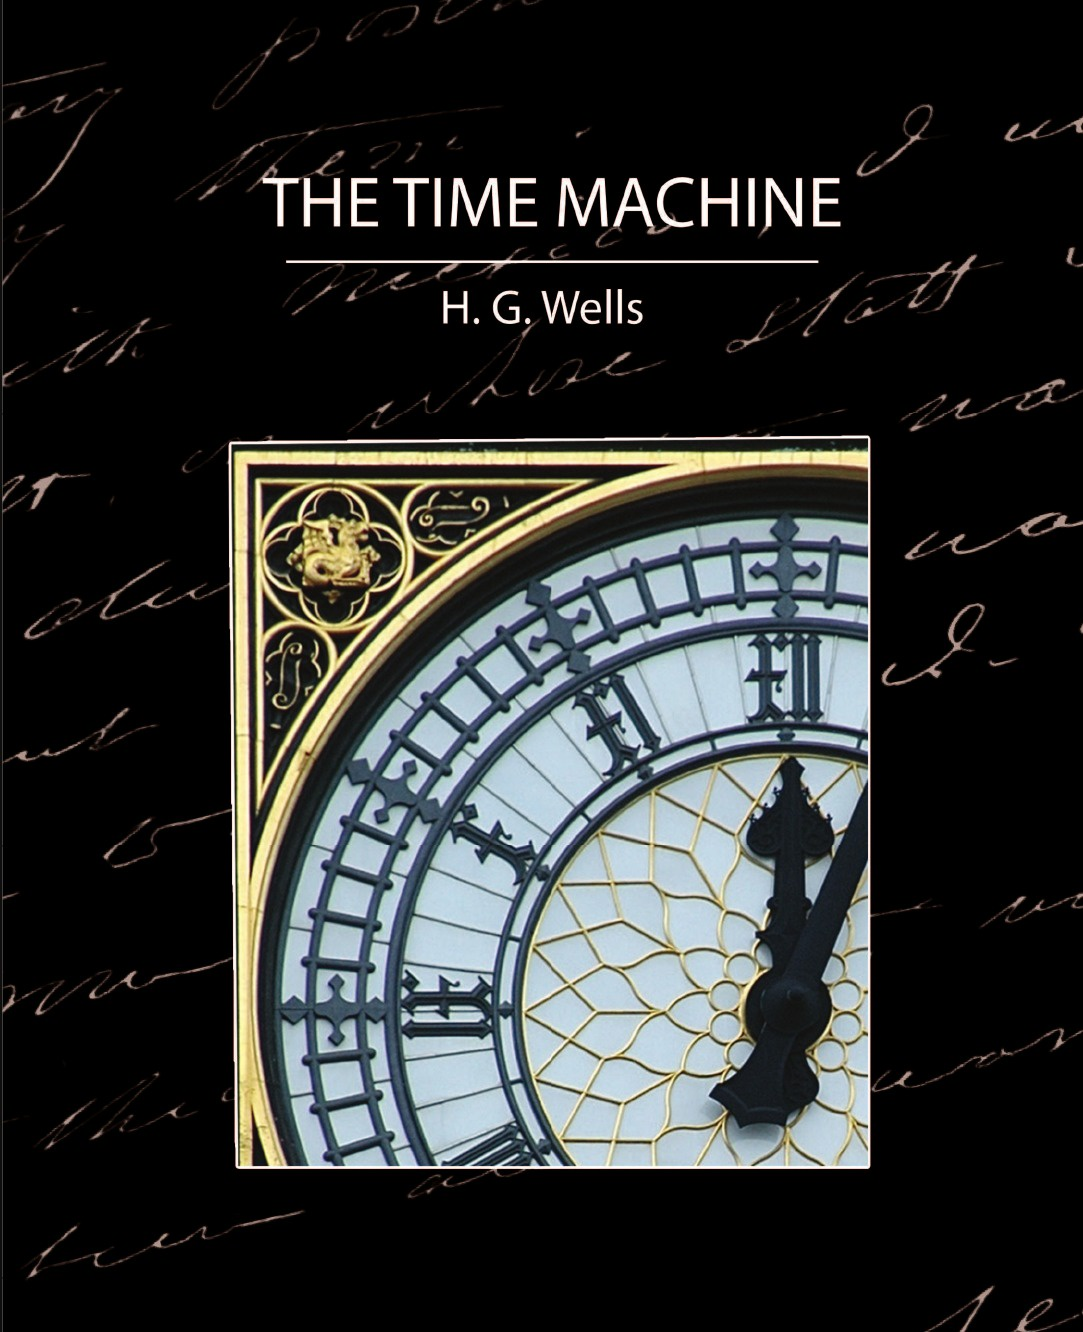 H. G. Wells, G. Wells H. G. Wells, H. G. Wells The Time Machine цена и фото